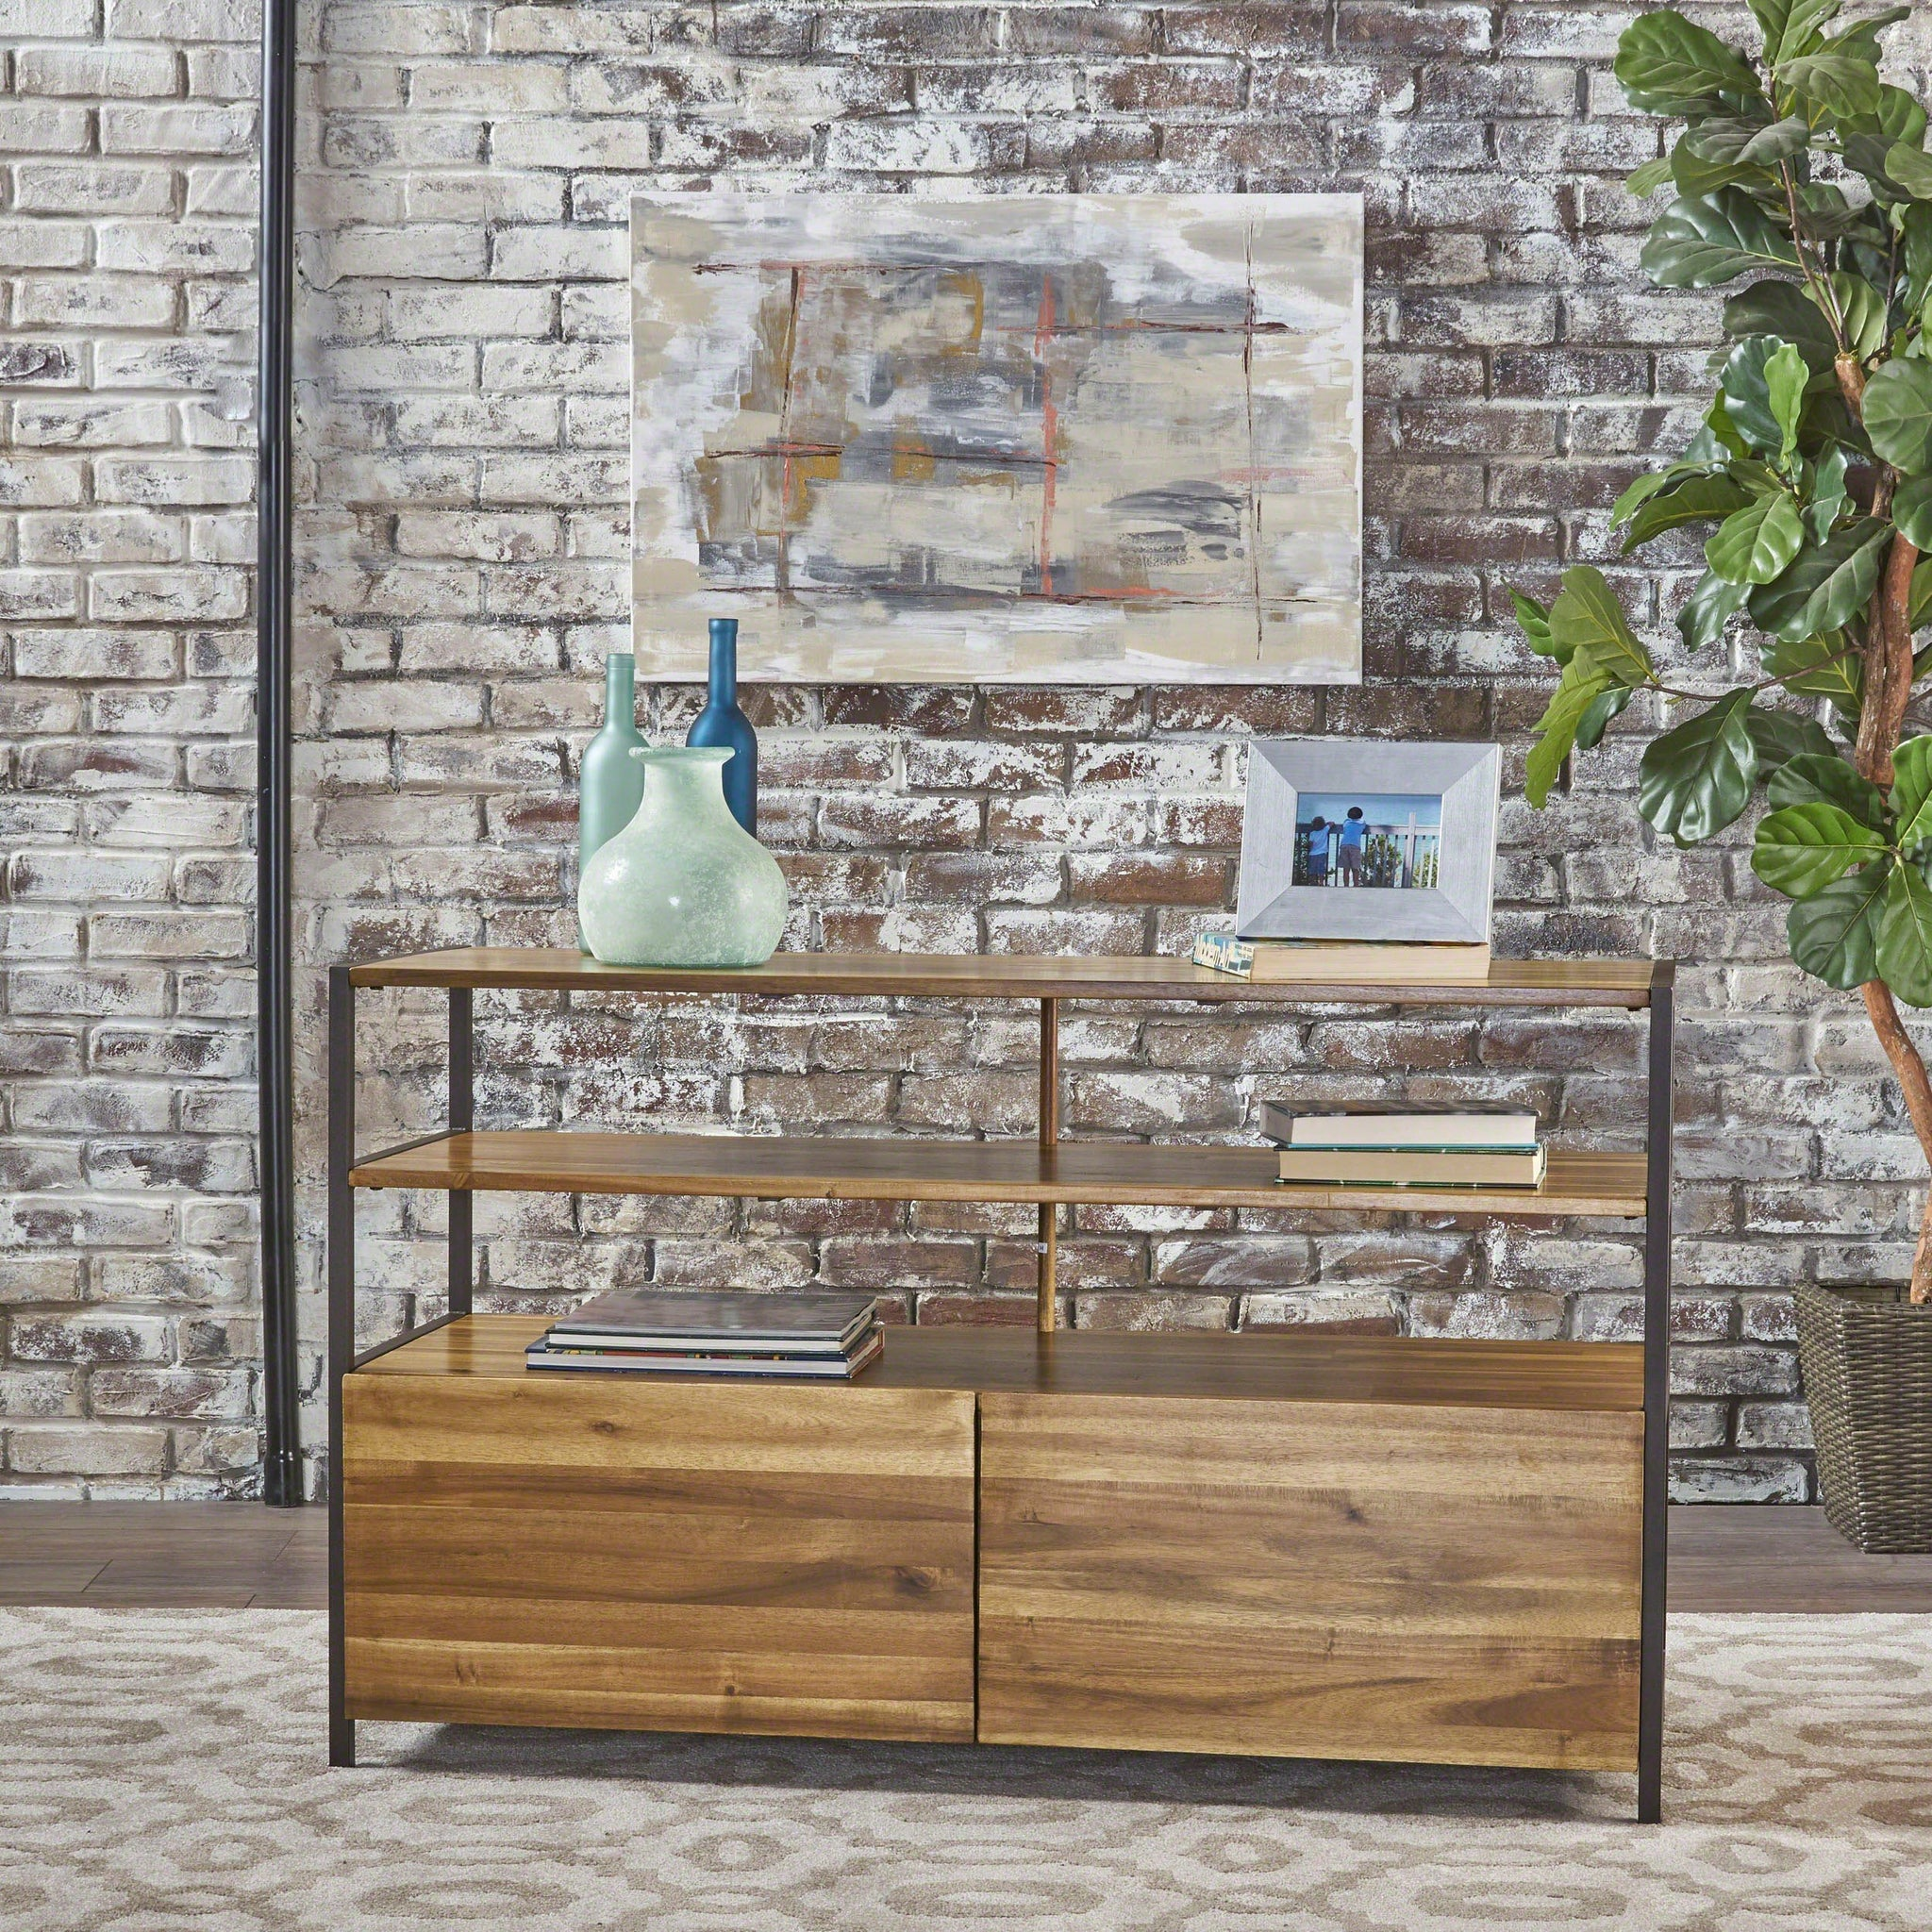 Fletcher Natural Stained Acacia Wood Cabinet With Rustic Metal Finished Iron Accents